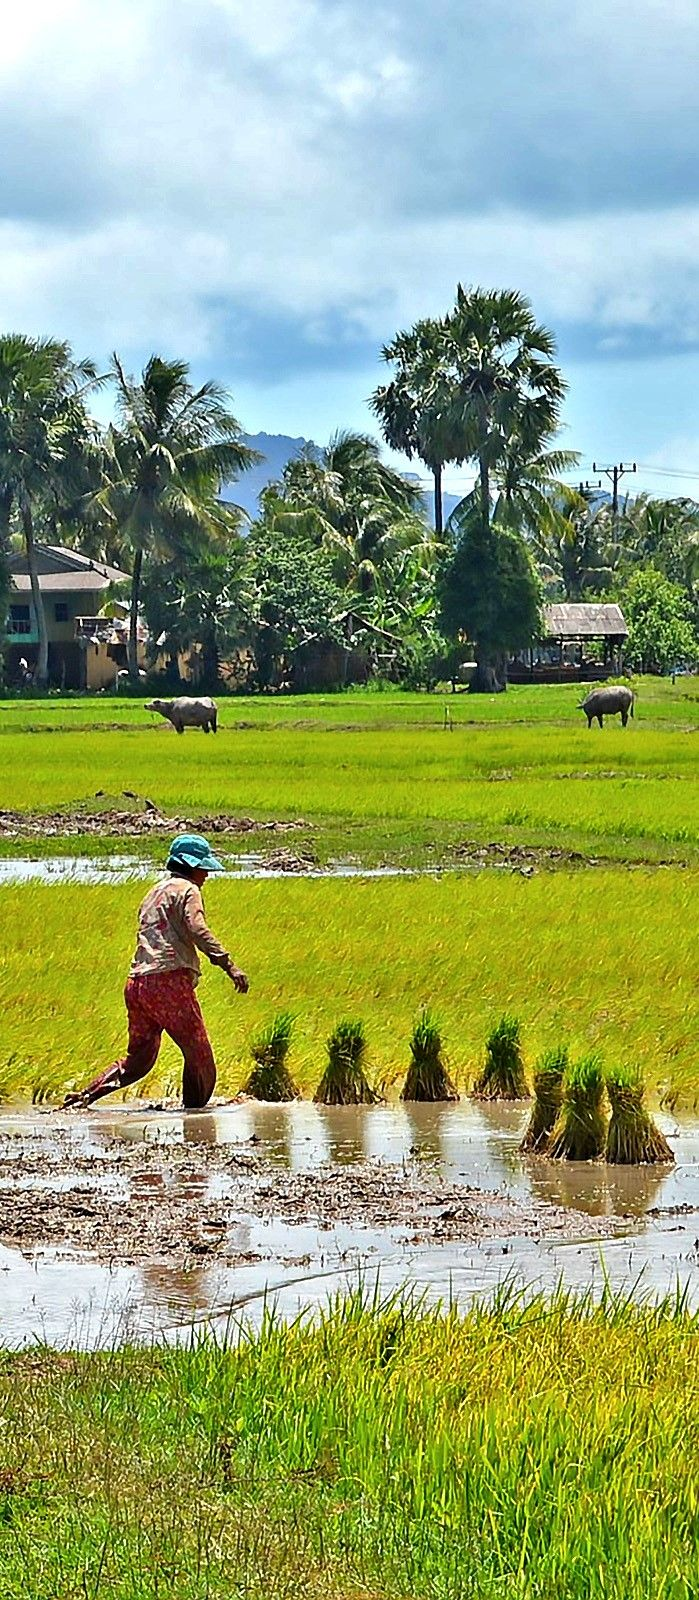 Kep farmer planting a new crop of rice as water buffalo graze in the distance. #photo #photography #travel